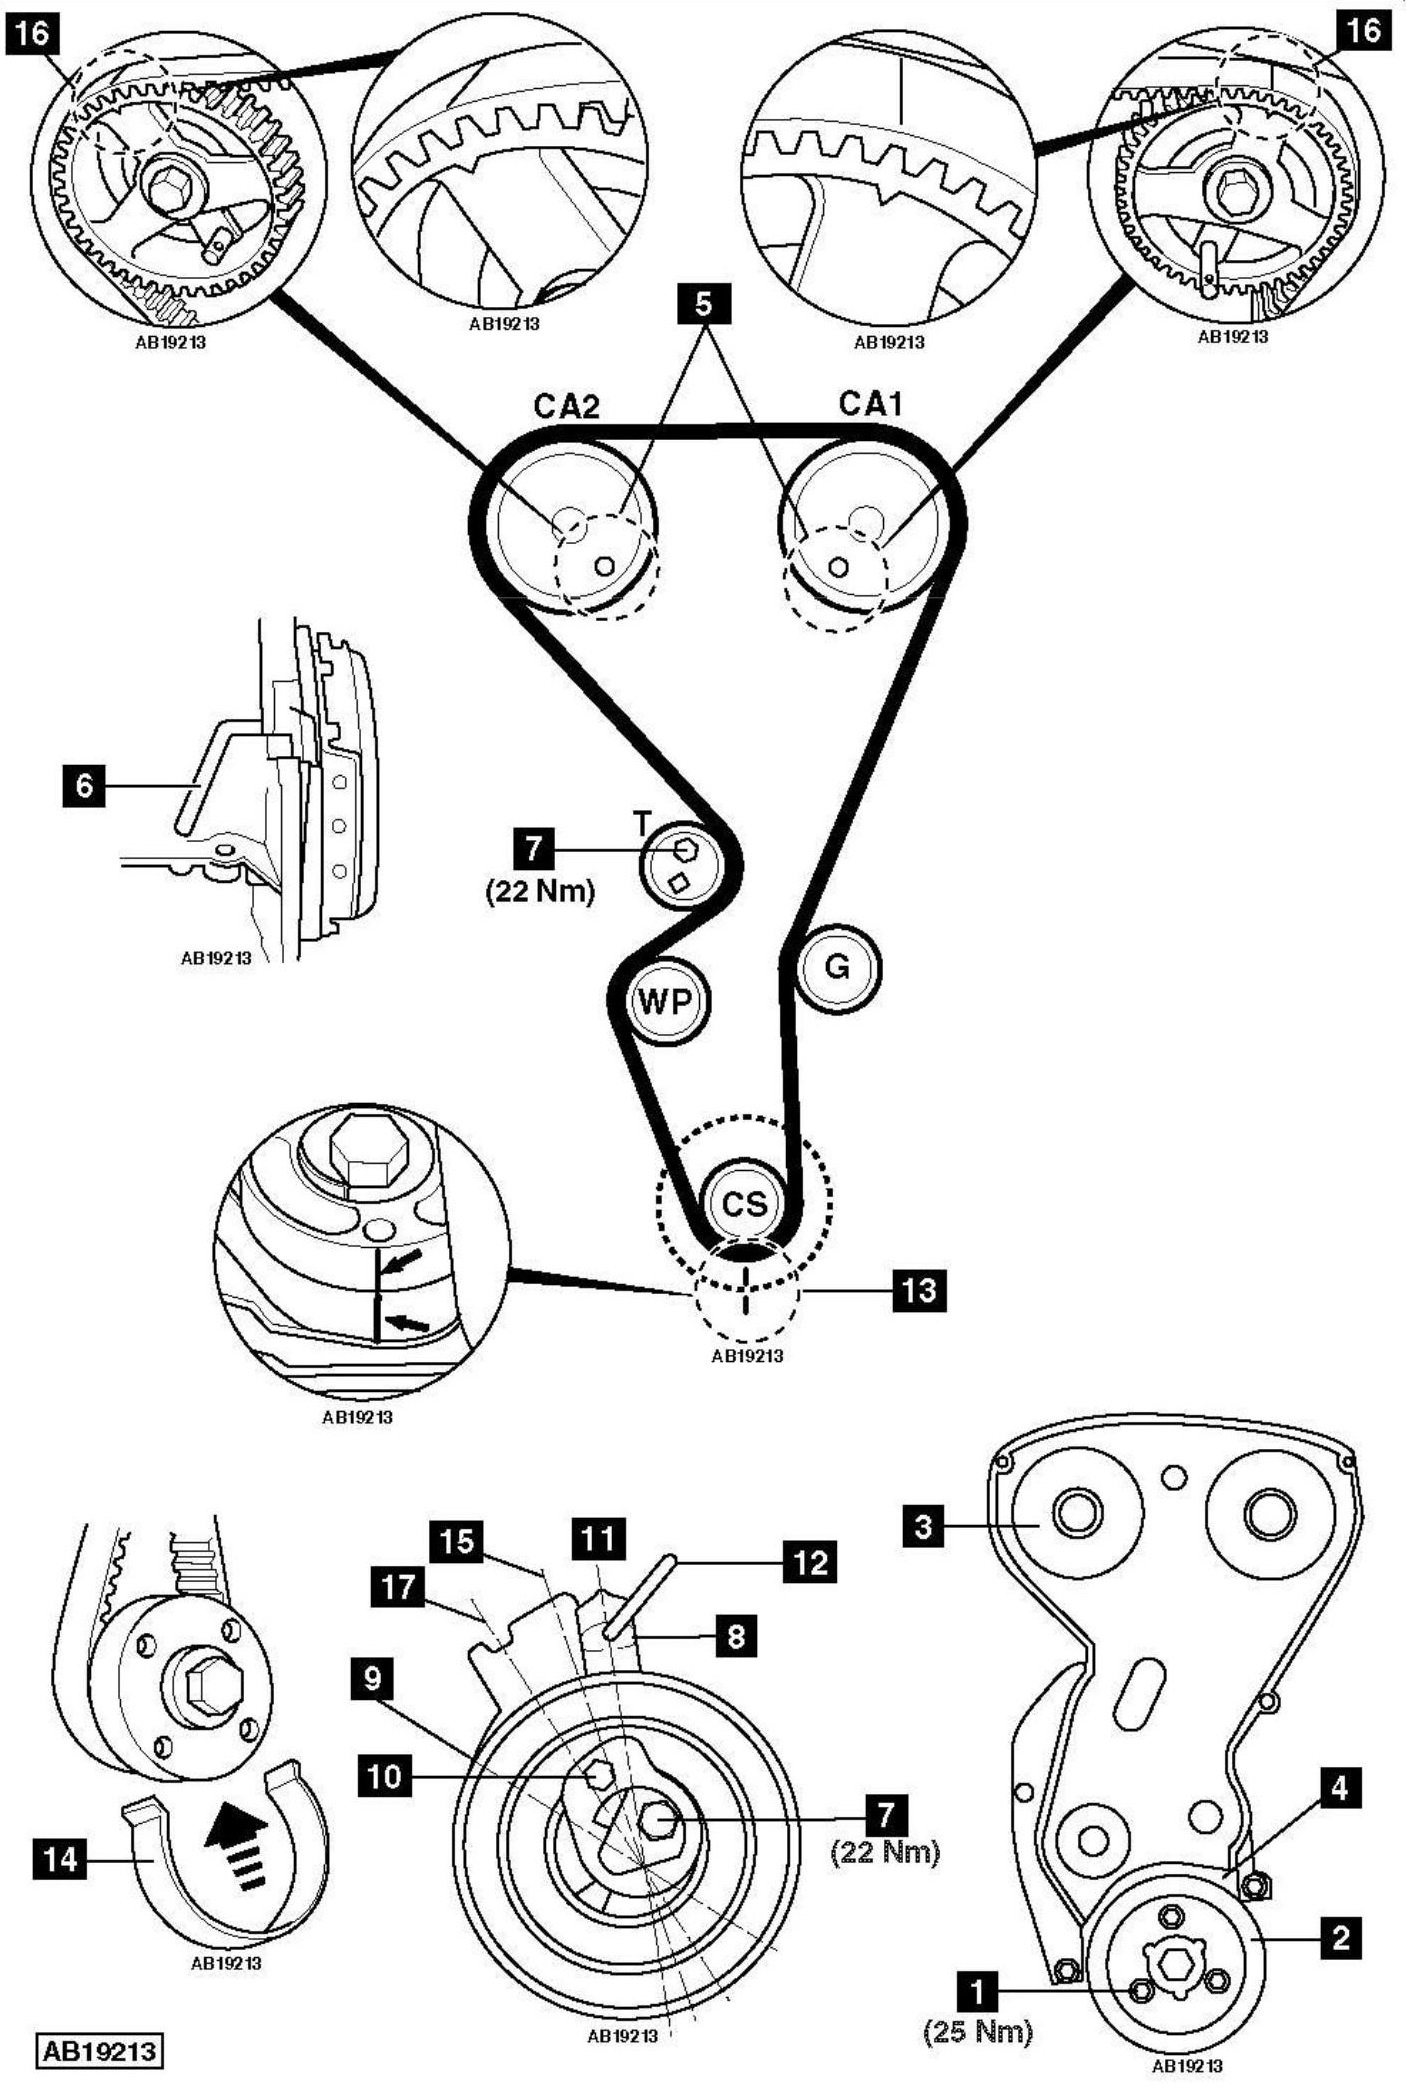 1990 Acura Legend Engine Diagram Search For Wiring Diagrams Vacuum Honda Civic Timing Belt 1991 Tl 1994